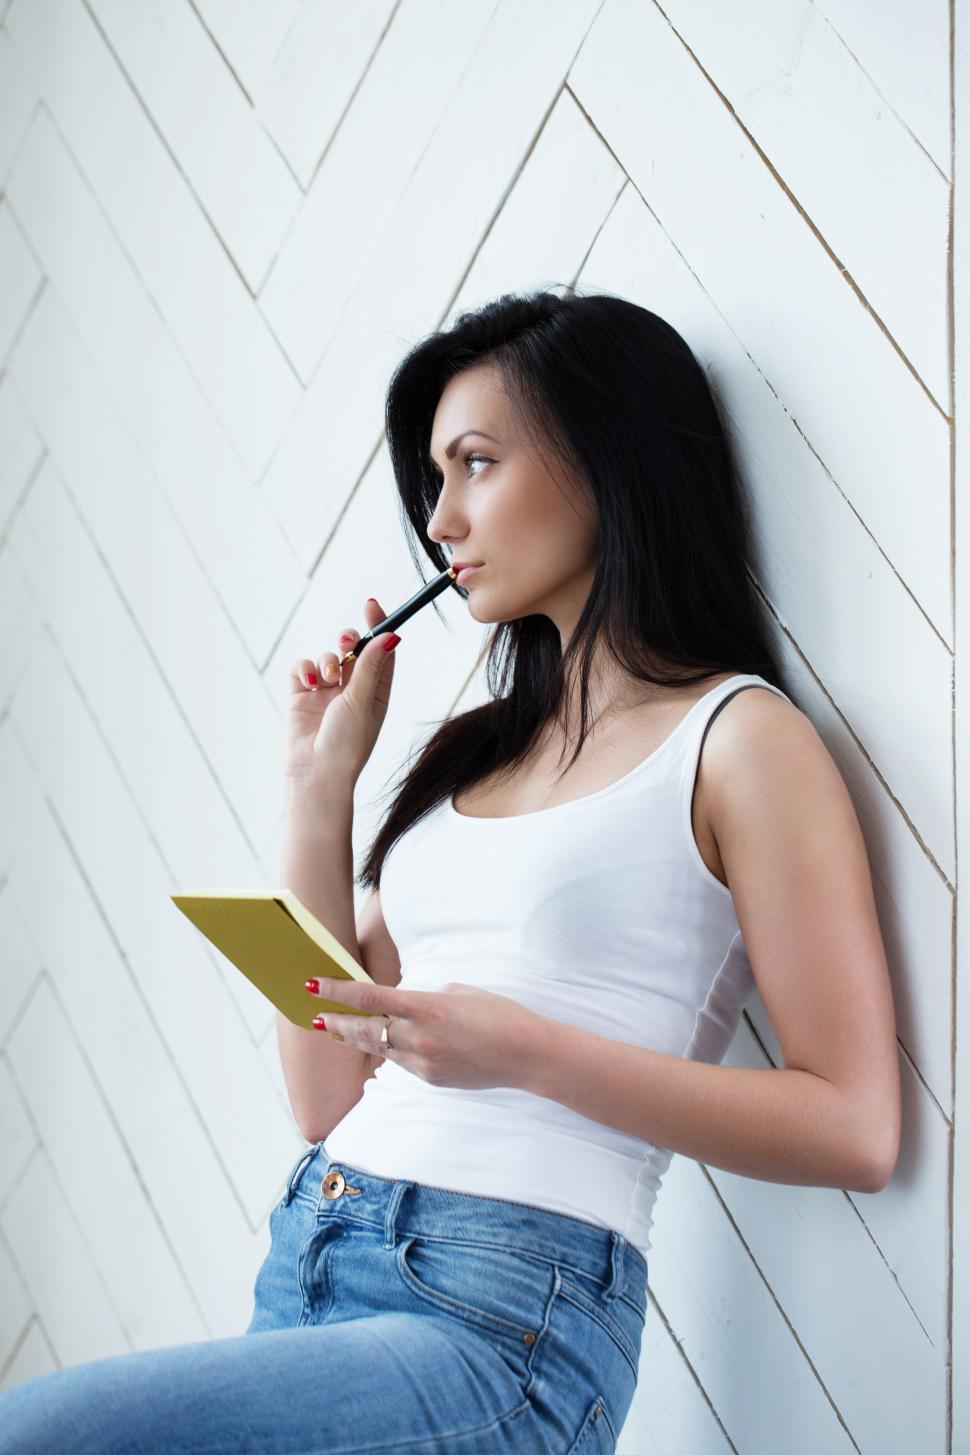 Download Free Stock Photo of Young woman thoughtfully chewing on her pen